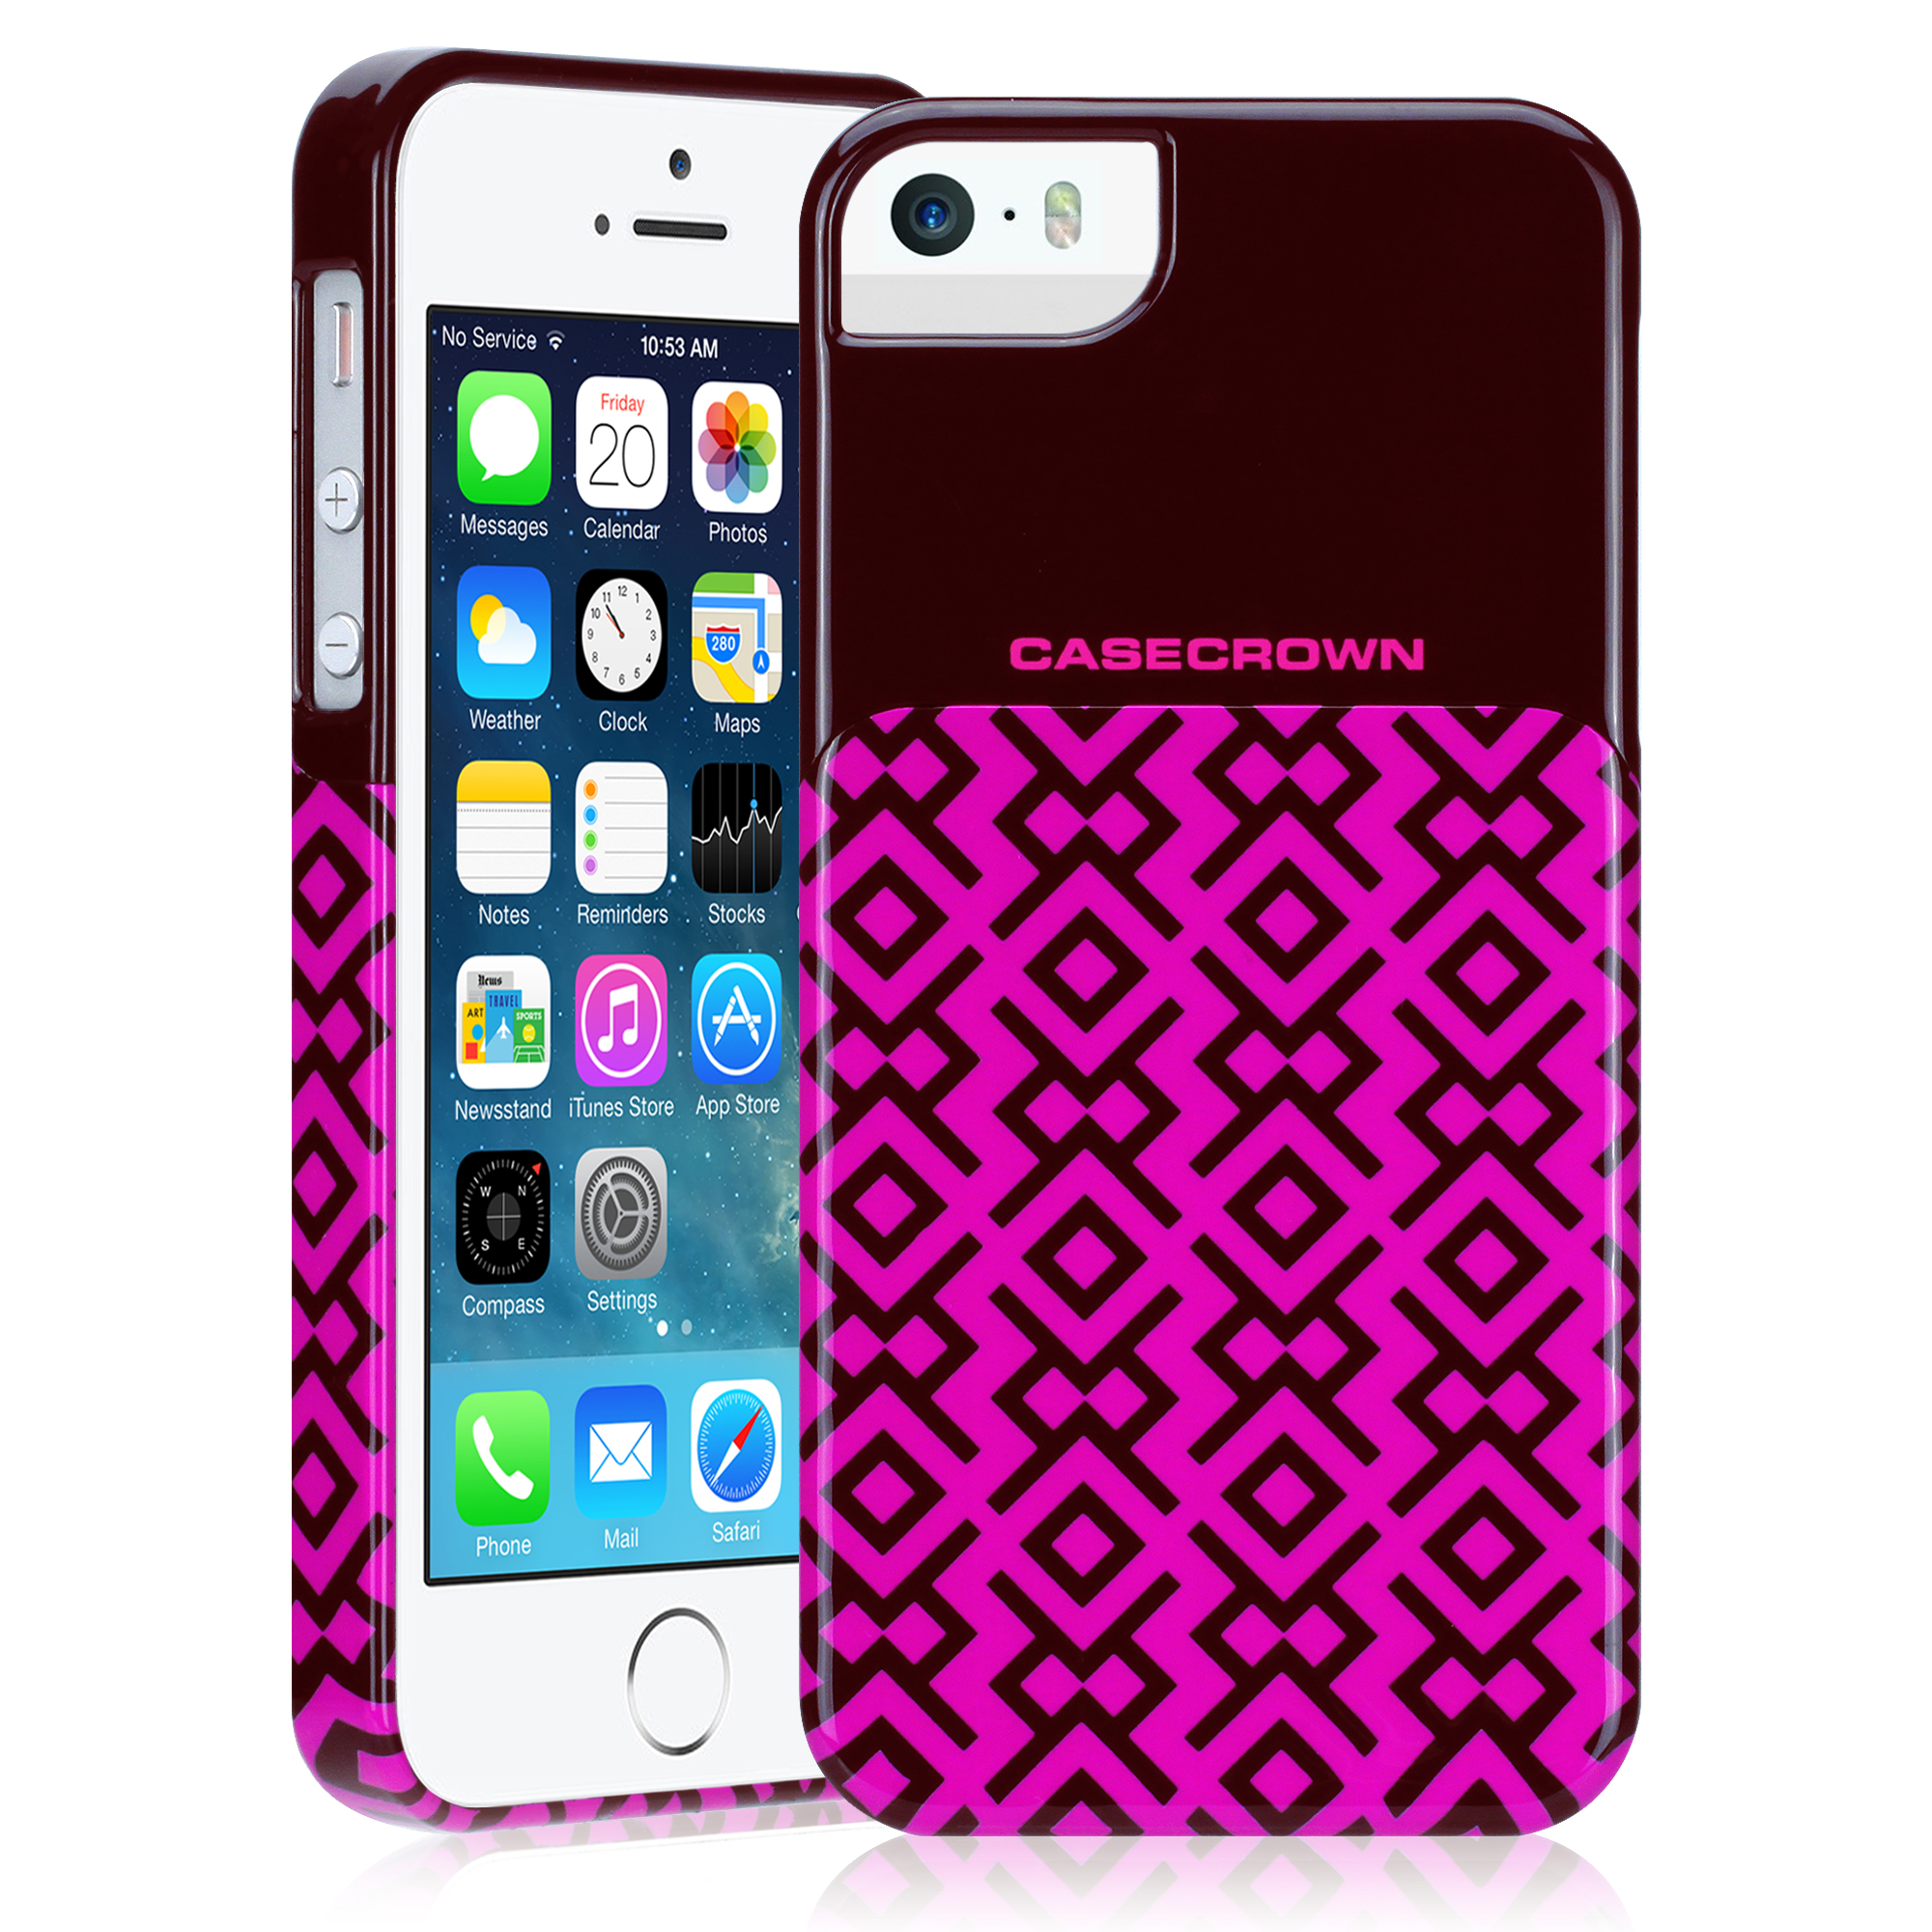 CaseCrown DecoBlock Case (Pink) for Apple iPhone 5